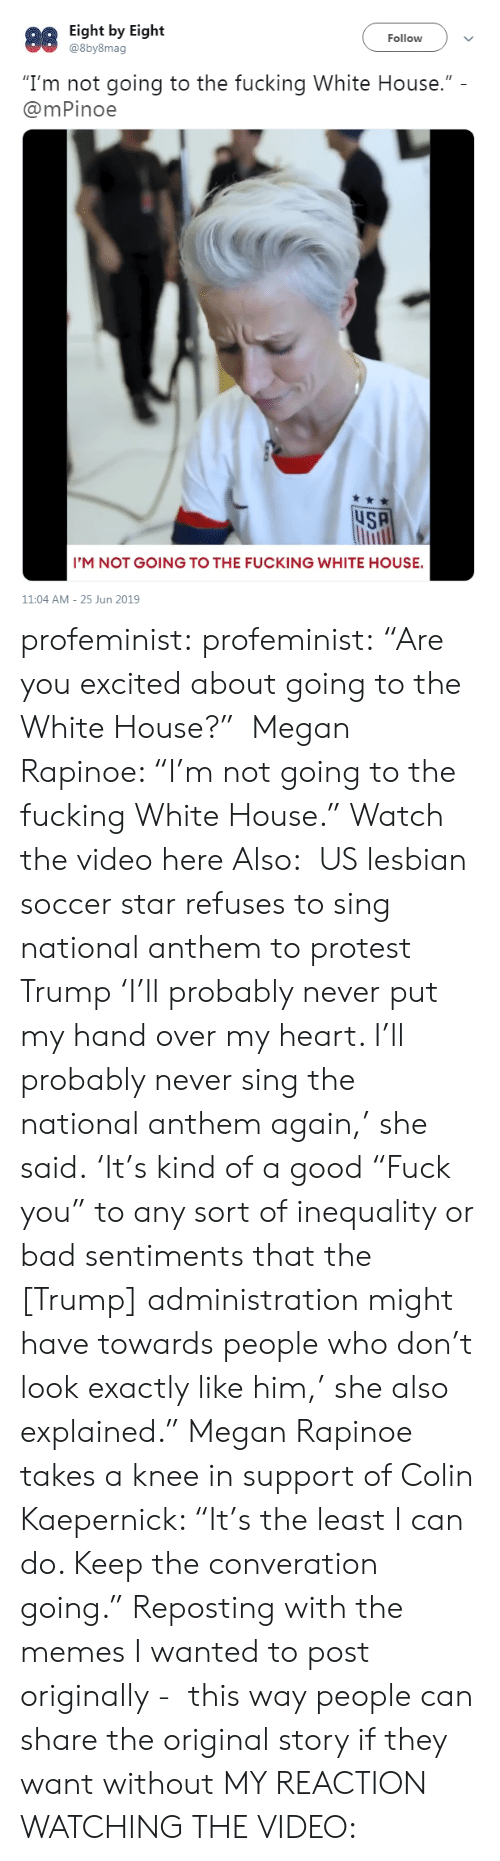 "Bad, Colin Kaepernick, and Fucking: Eight by Eight  @8by8mag  88  Follow  ""I'm not going to the fucking White House.""  @mPinoe  uSA  I'M NOT GOING TO THE FUCKING WHITE HOUSE.  11:04 AM 25 Jun 2019 profeminist: profeminist:  ""Are you excited about going to the White House?""  Megan Rapinoe: ""I'm not going to the fucking White House."" Watch the video here  Also:  US lesbian soccer star refuses to sing national anthem to protest Trump 'I'll probably never put my hand over my heart. I'll probably never sing the national anthem again,' she said. 'It's kind of a good ""Fuck you"" to any sort of inequality or bad sentiments that the [Trump] administration might have towards people who don't look exactly like him,' she also explained."" Megan Rapinoe takes a knee in support of Colin Kaepernick: ""It's the least I can do. Keep the converation going.""  Reposting with the memes I wanted to post originally -  this way people can share the original story if they want without MY REACTION WATCHING THE VIDEO:"